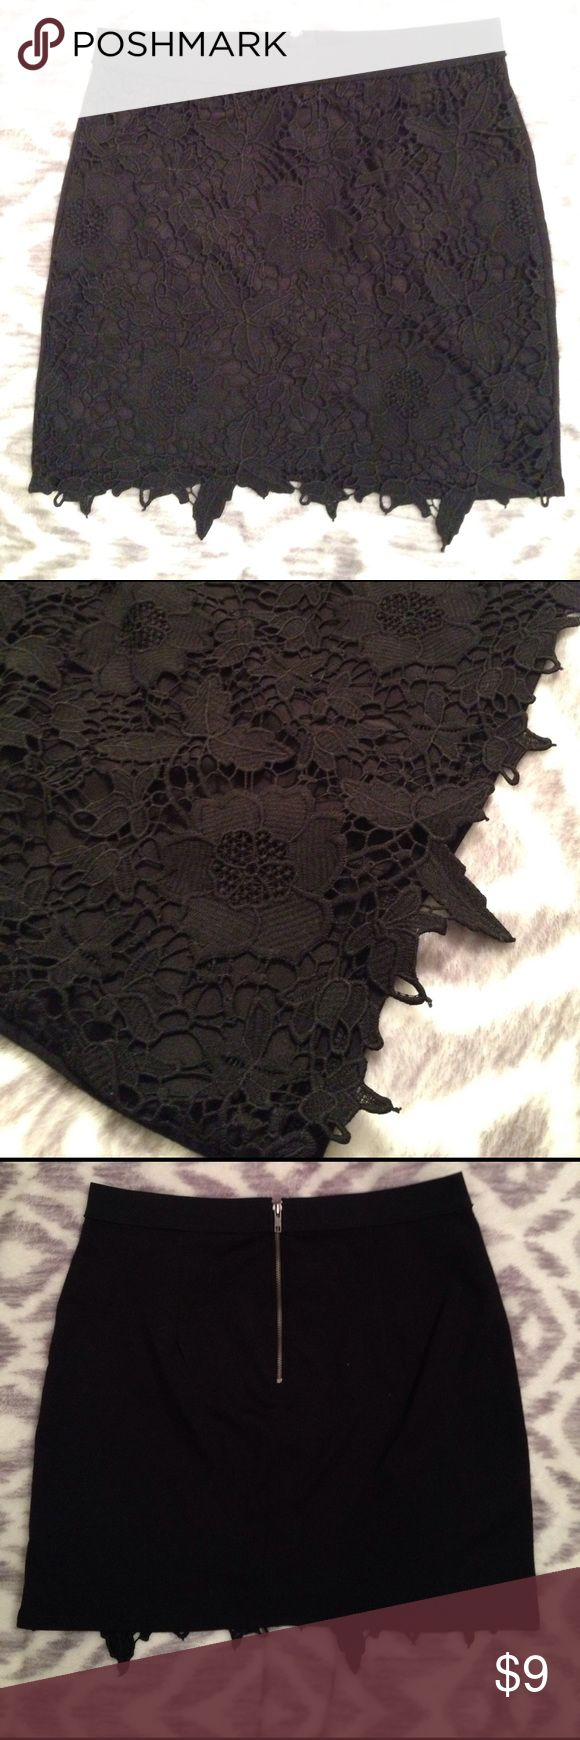 American Eagle lace mini skirt Stretchy black mini skirt with lace overlay on the front 🖤. Fits on the smaller side American Eagle Outfitters Skirts Mini